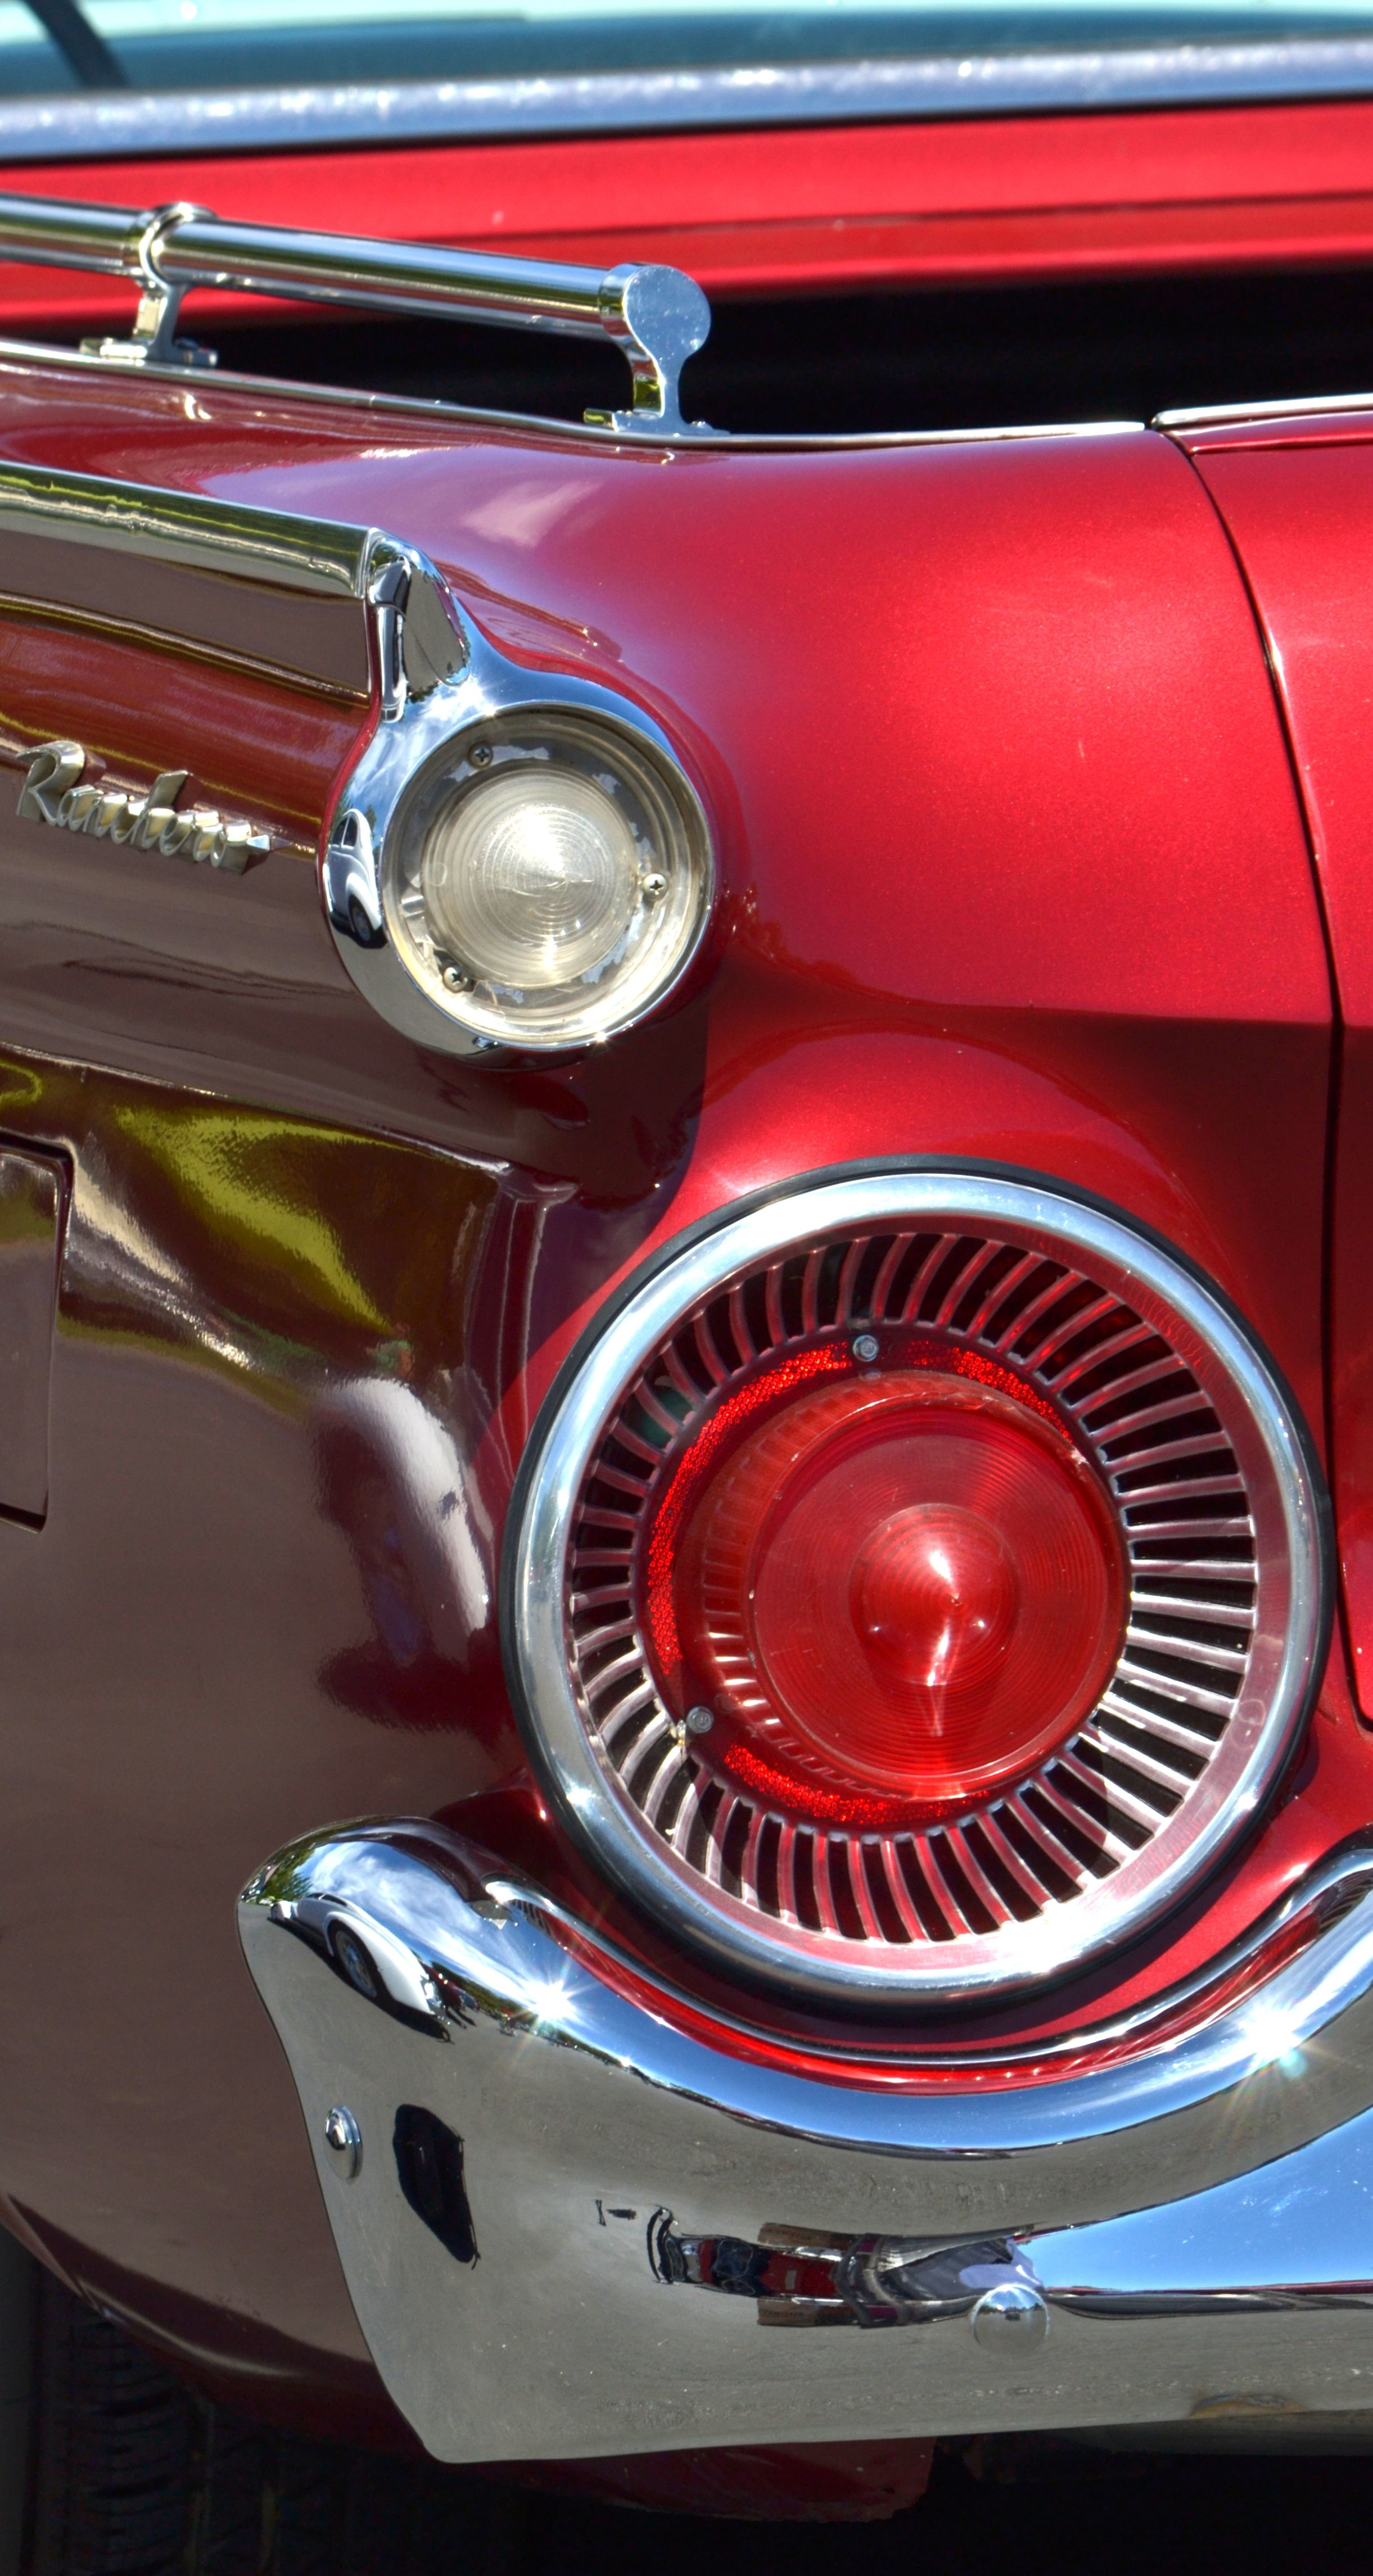 Red Ford Ranchero By Dean Ferreira Fine Art Classic Cars Old Cars Vintage Trucks Retro vintage red car headlight hd